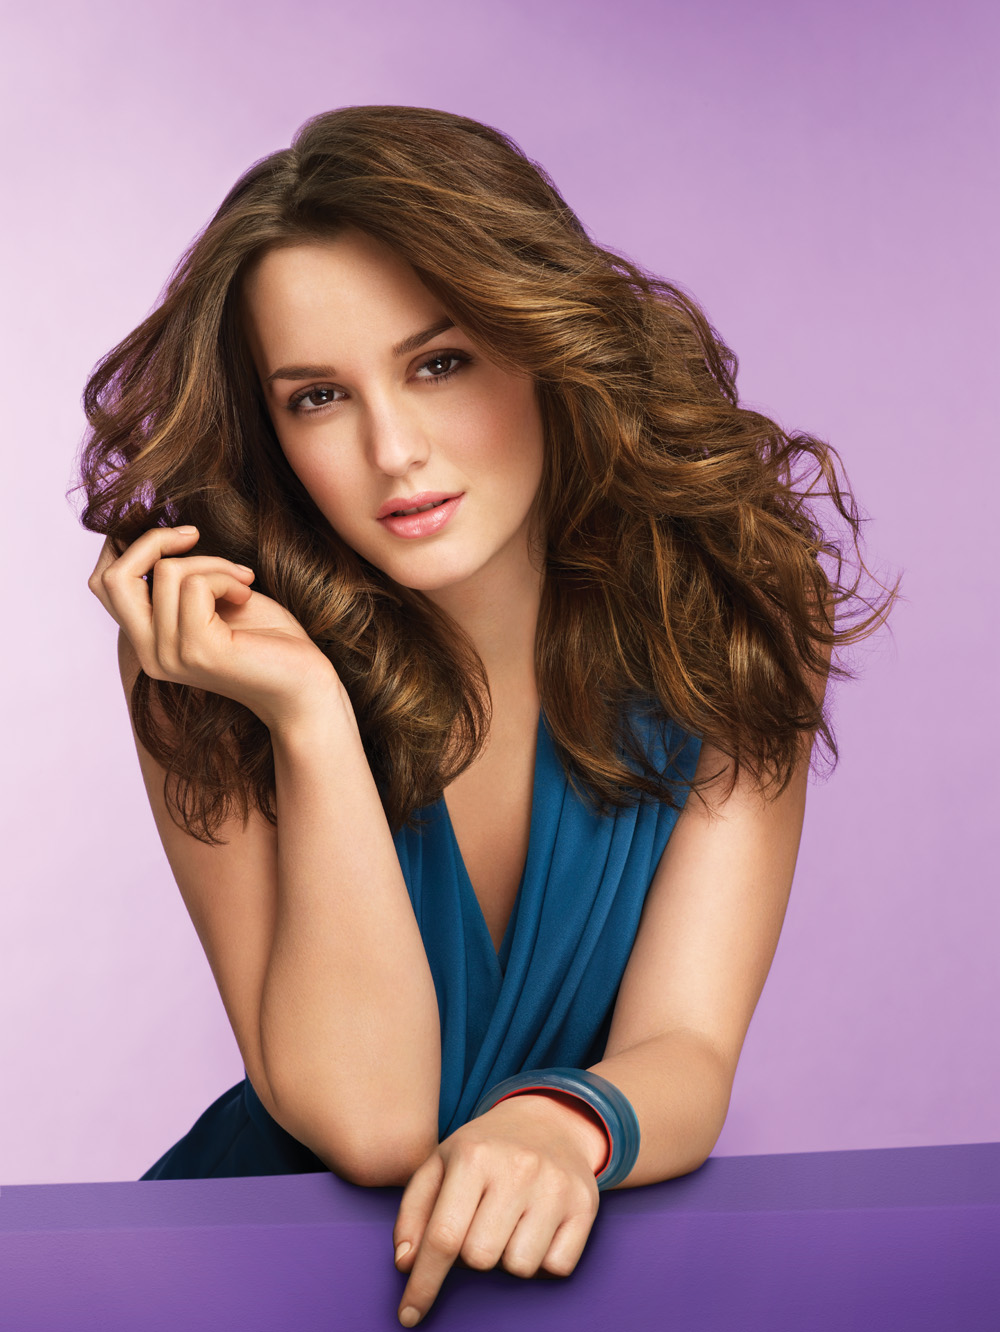 Leighton Meester - Wallpaper Actress